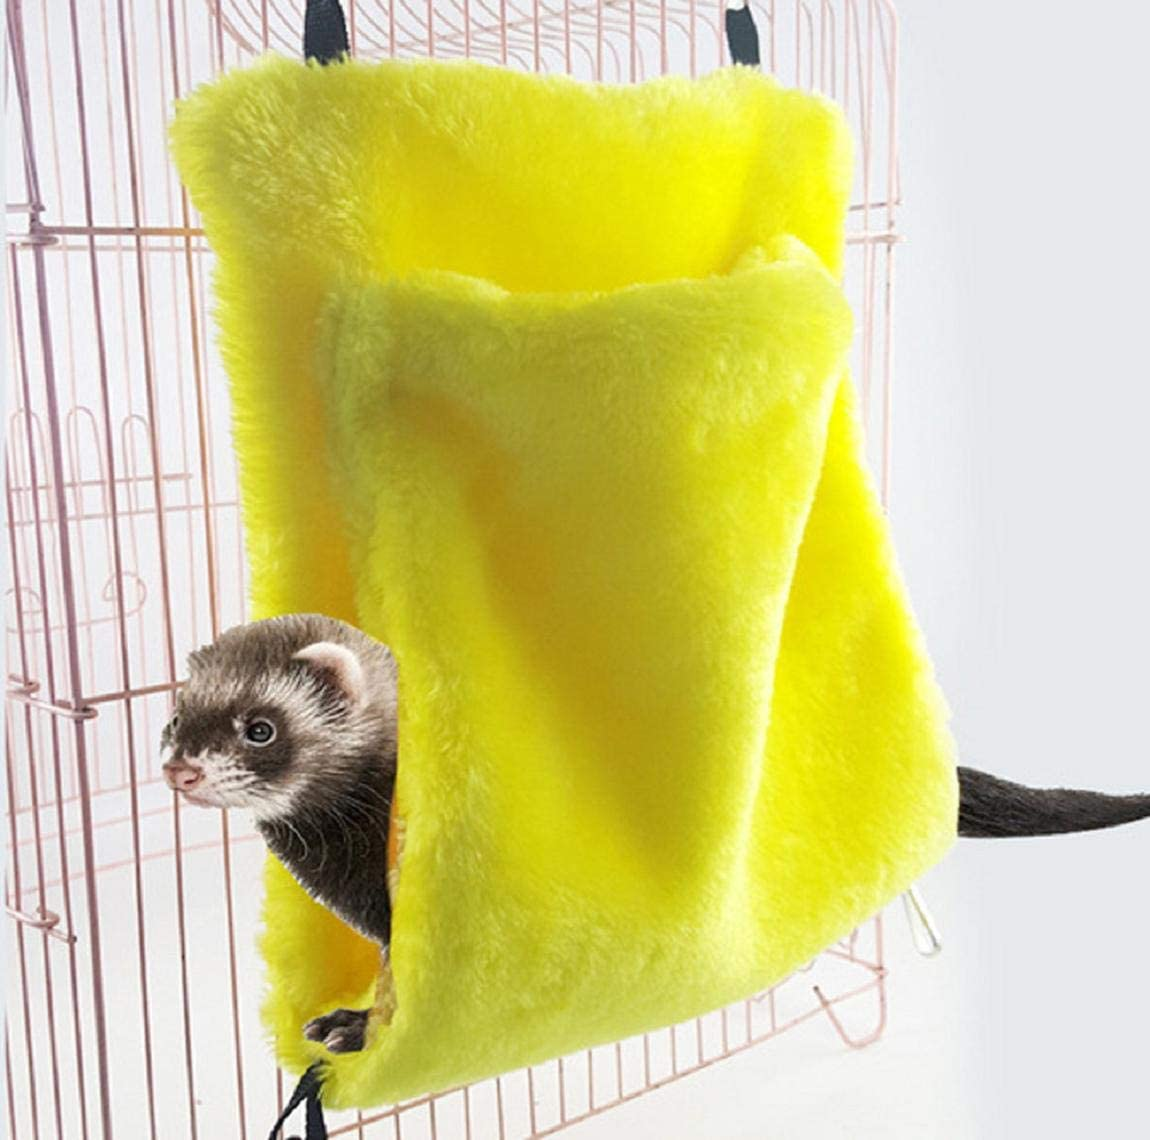 Barlingrock Pet Small Animals Beds House, Hamster Dwarfs Guinea Pig Winter Warm Nest Rat Parrot Bird Soft Comfortable Hanging Swing Hammock Squirrel Chinchilla Cave Cage Sleep Play Rest Cage Mat